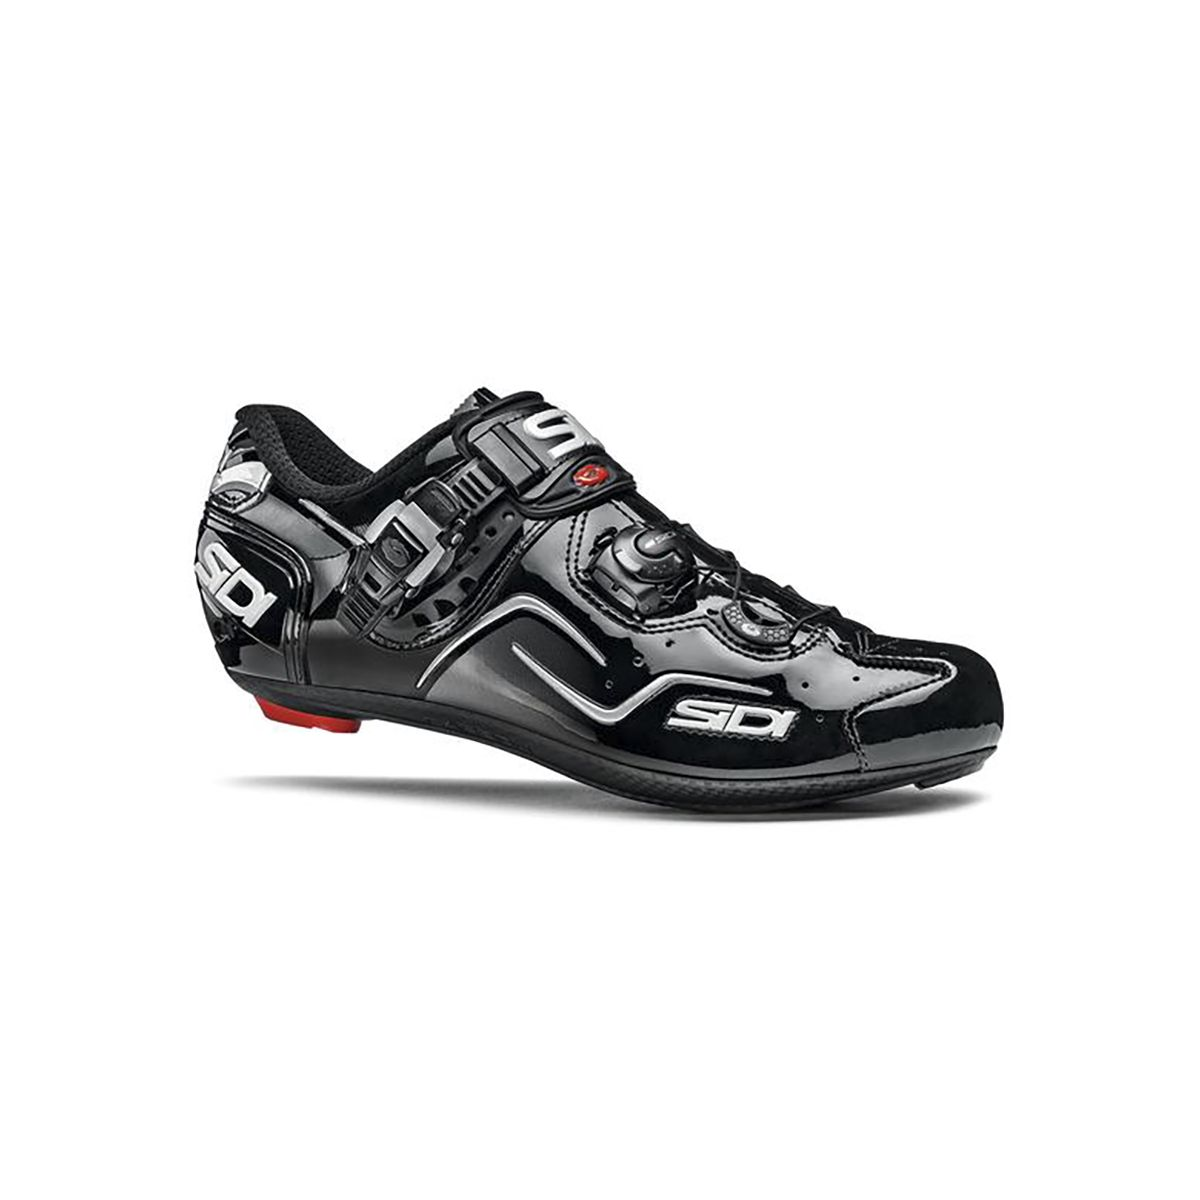 SIDI KAOS road shoes | Shoes and overlays